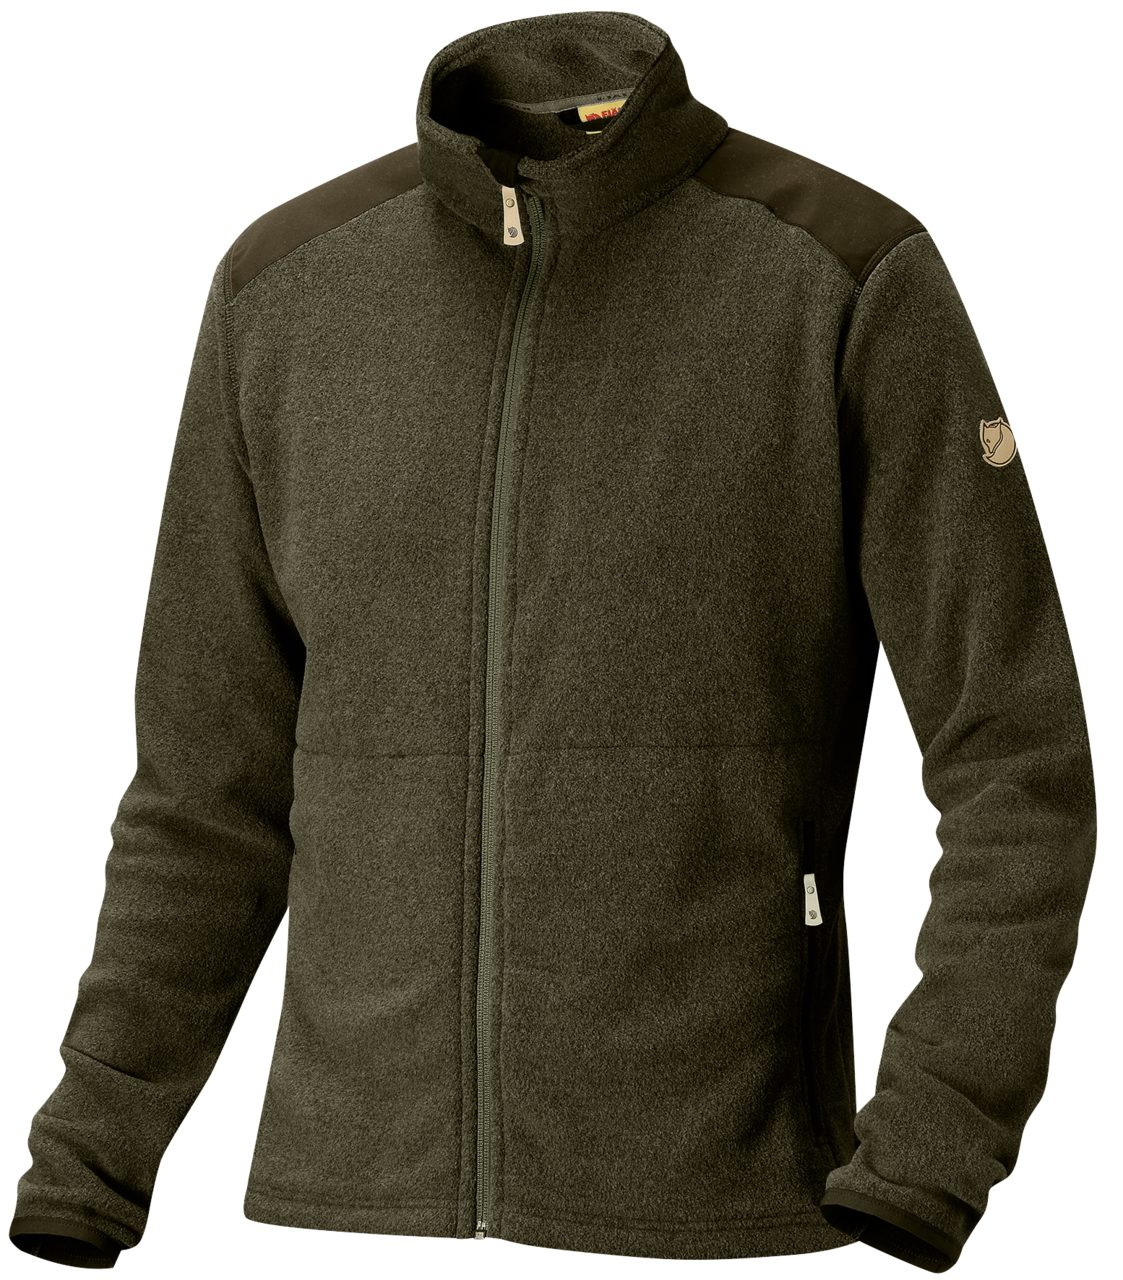 Fleece Sten olive